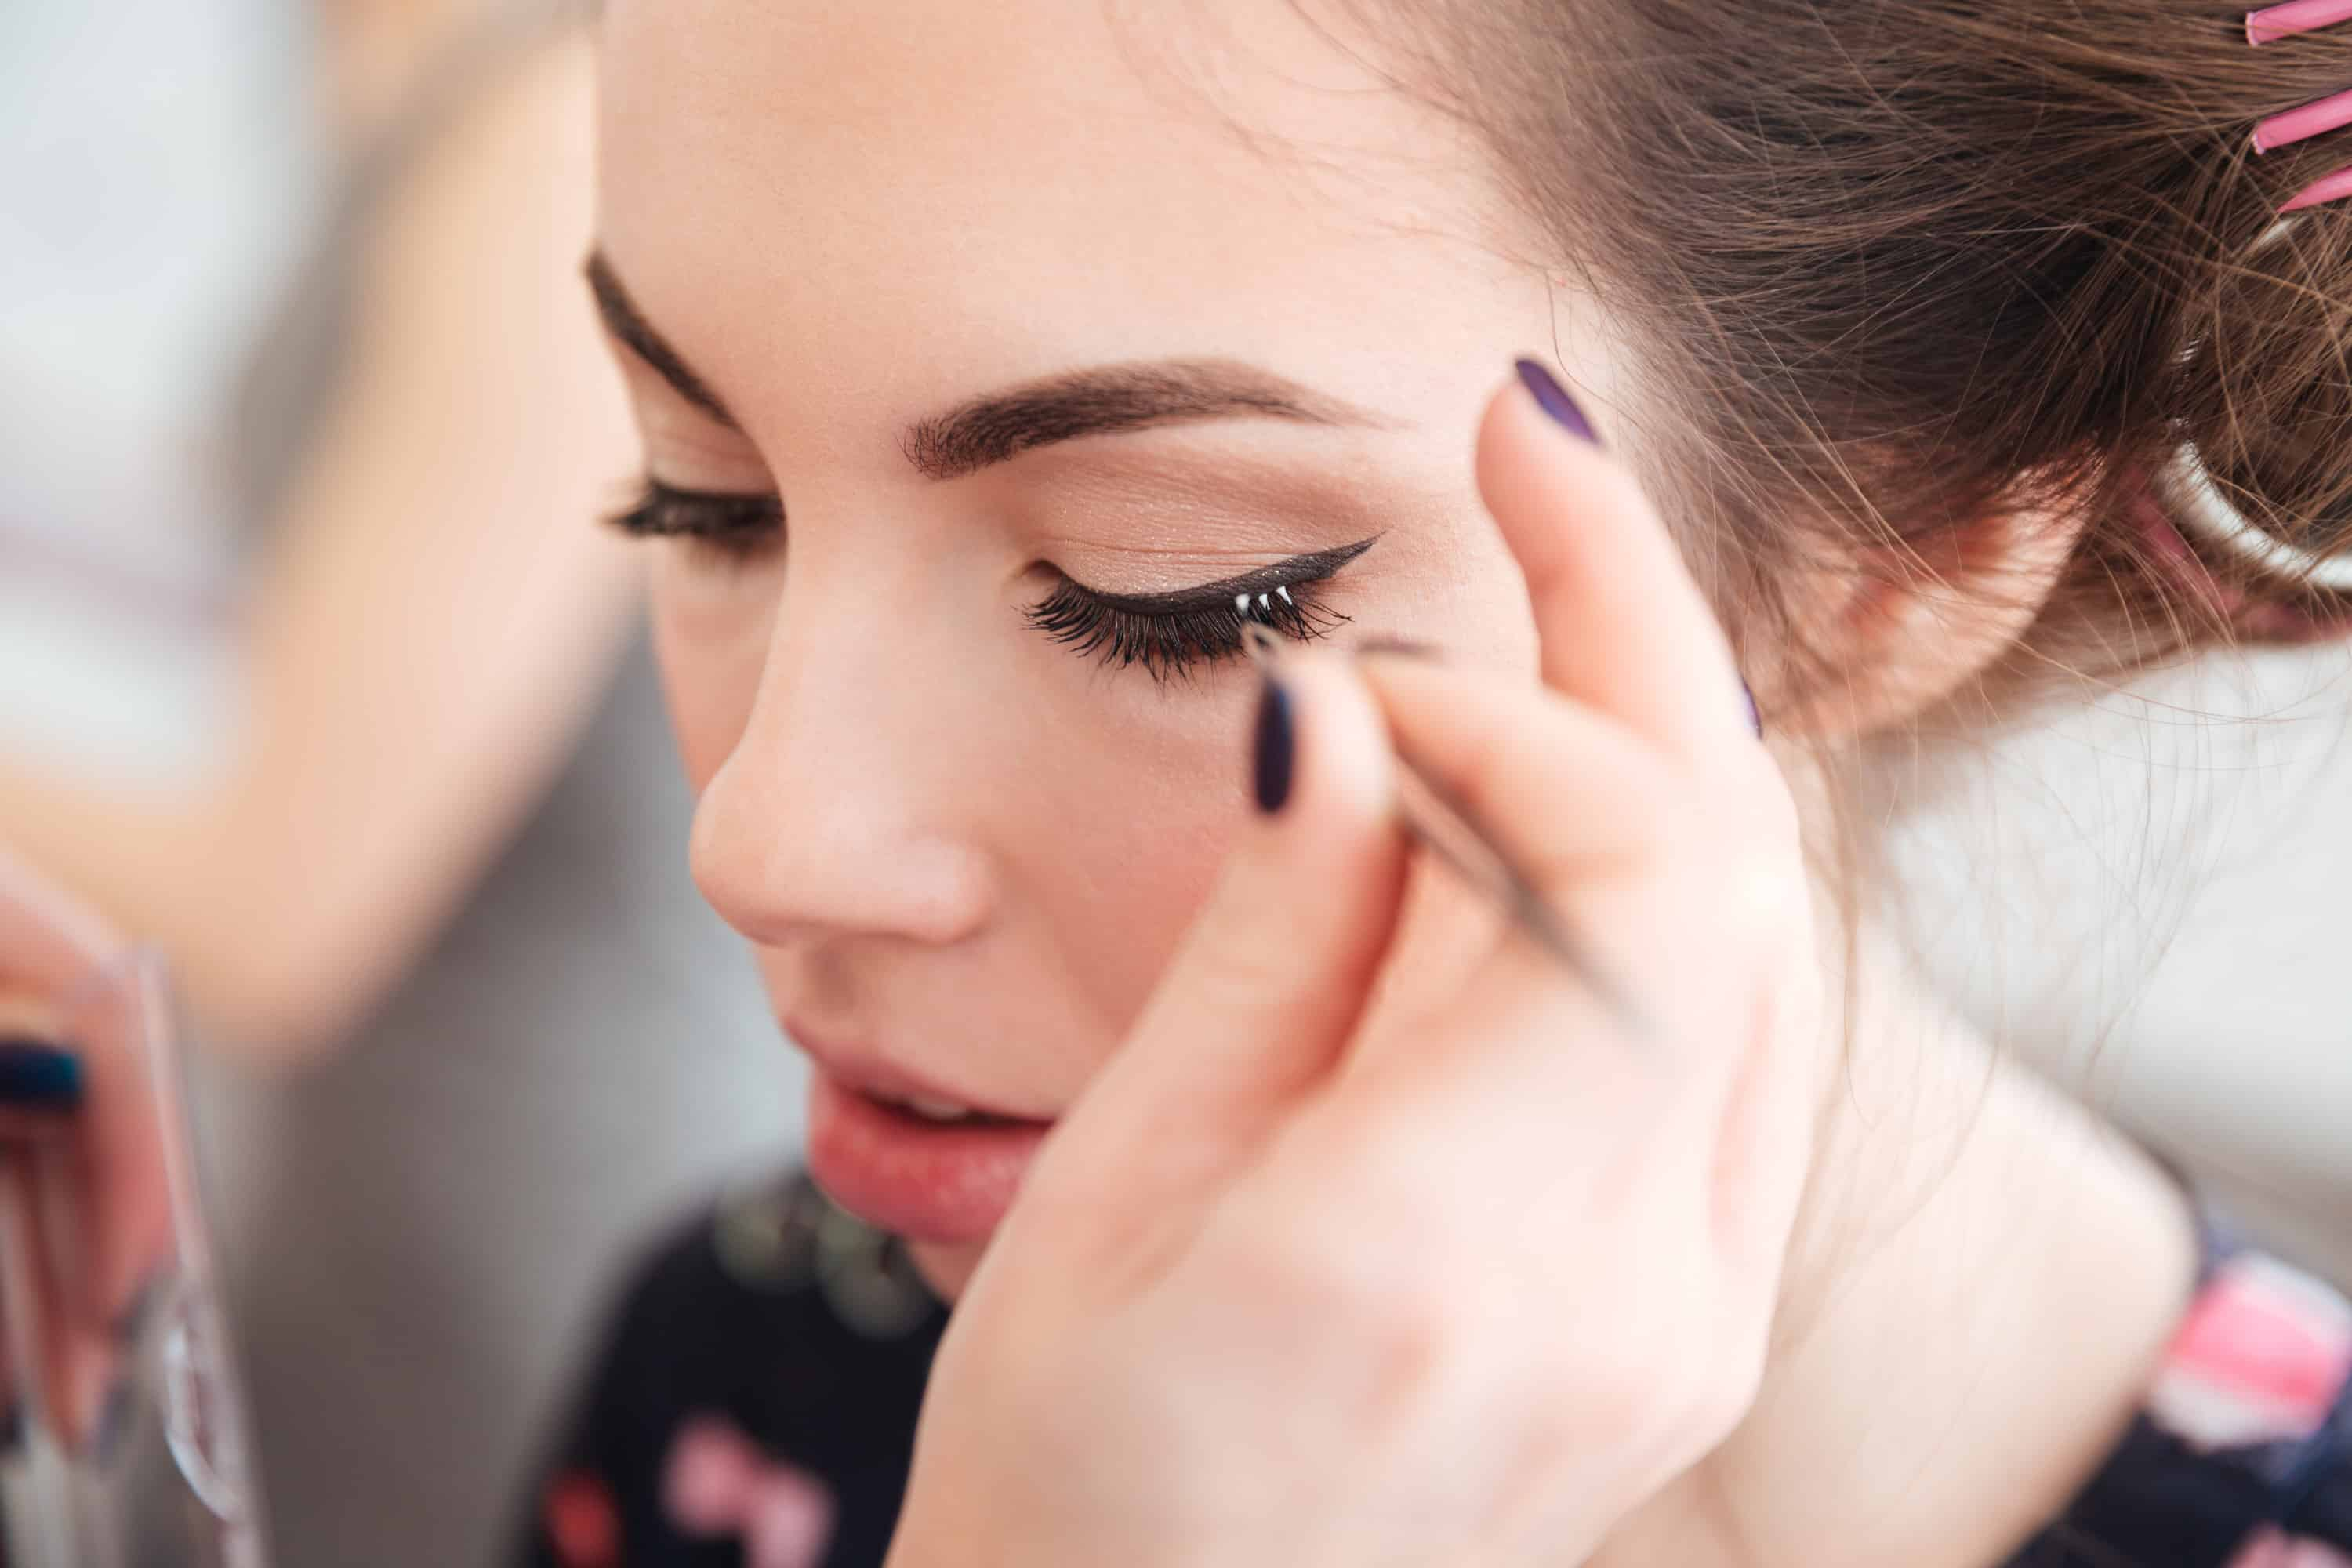 Daughter Who is New to Makeup